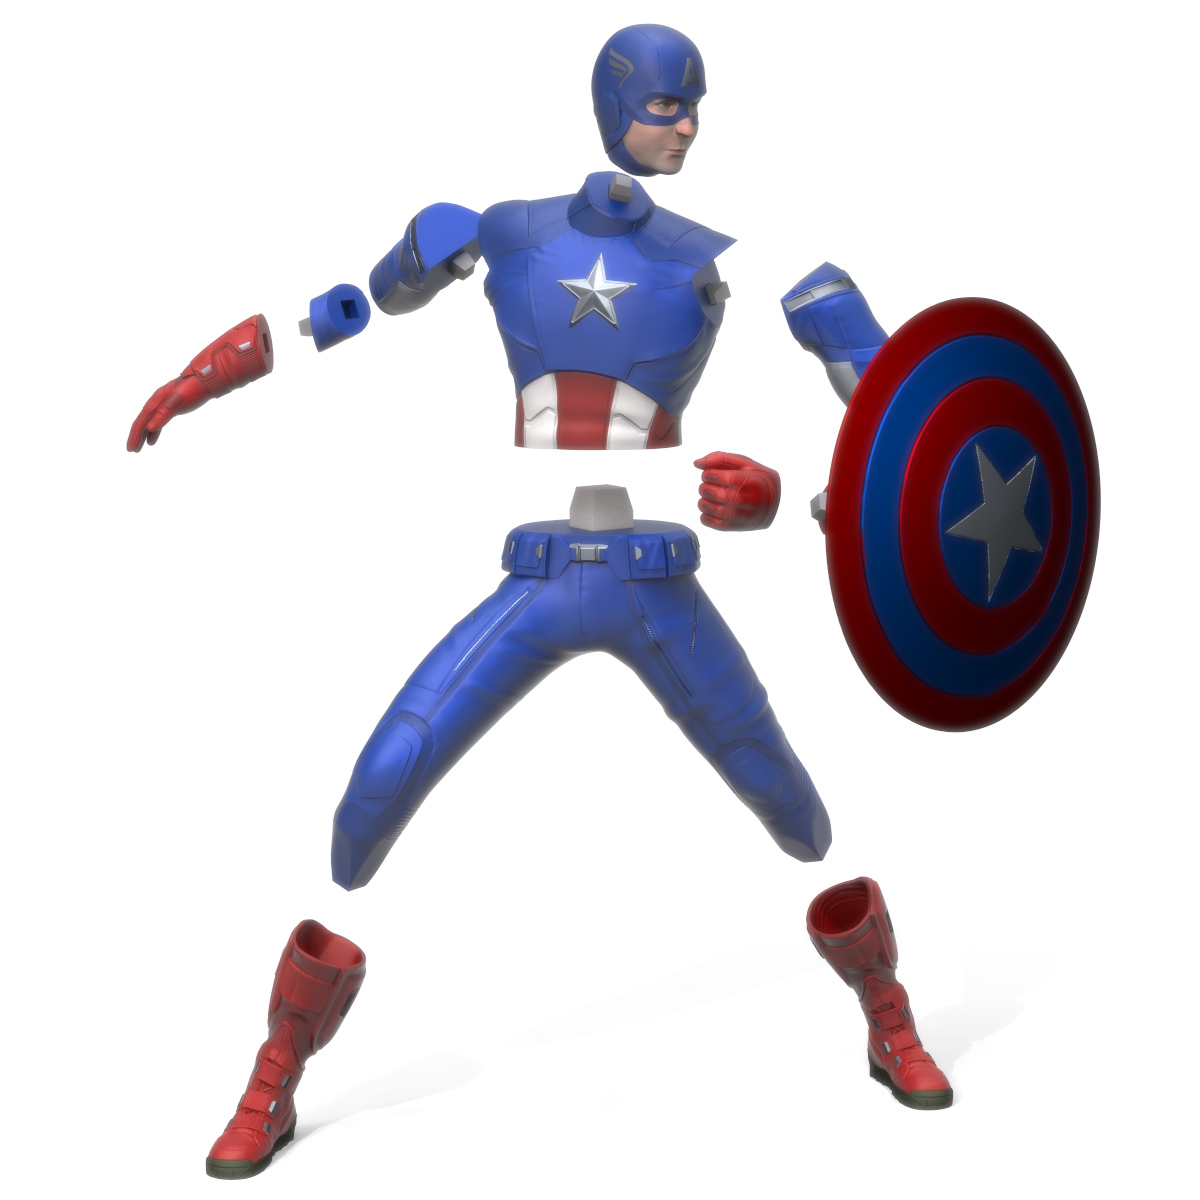 Captain America Exploded, 3D Printer Models